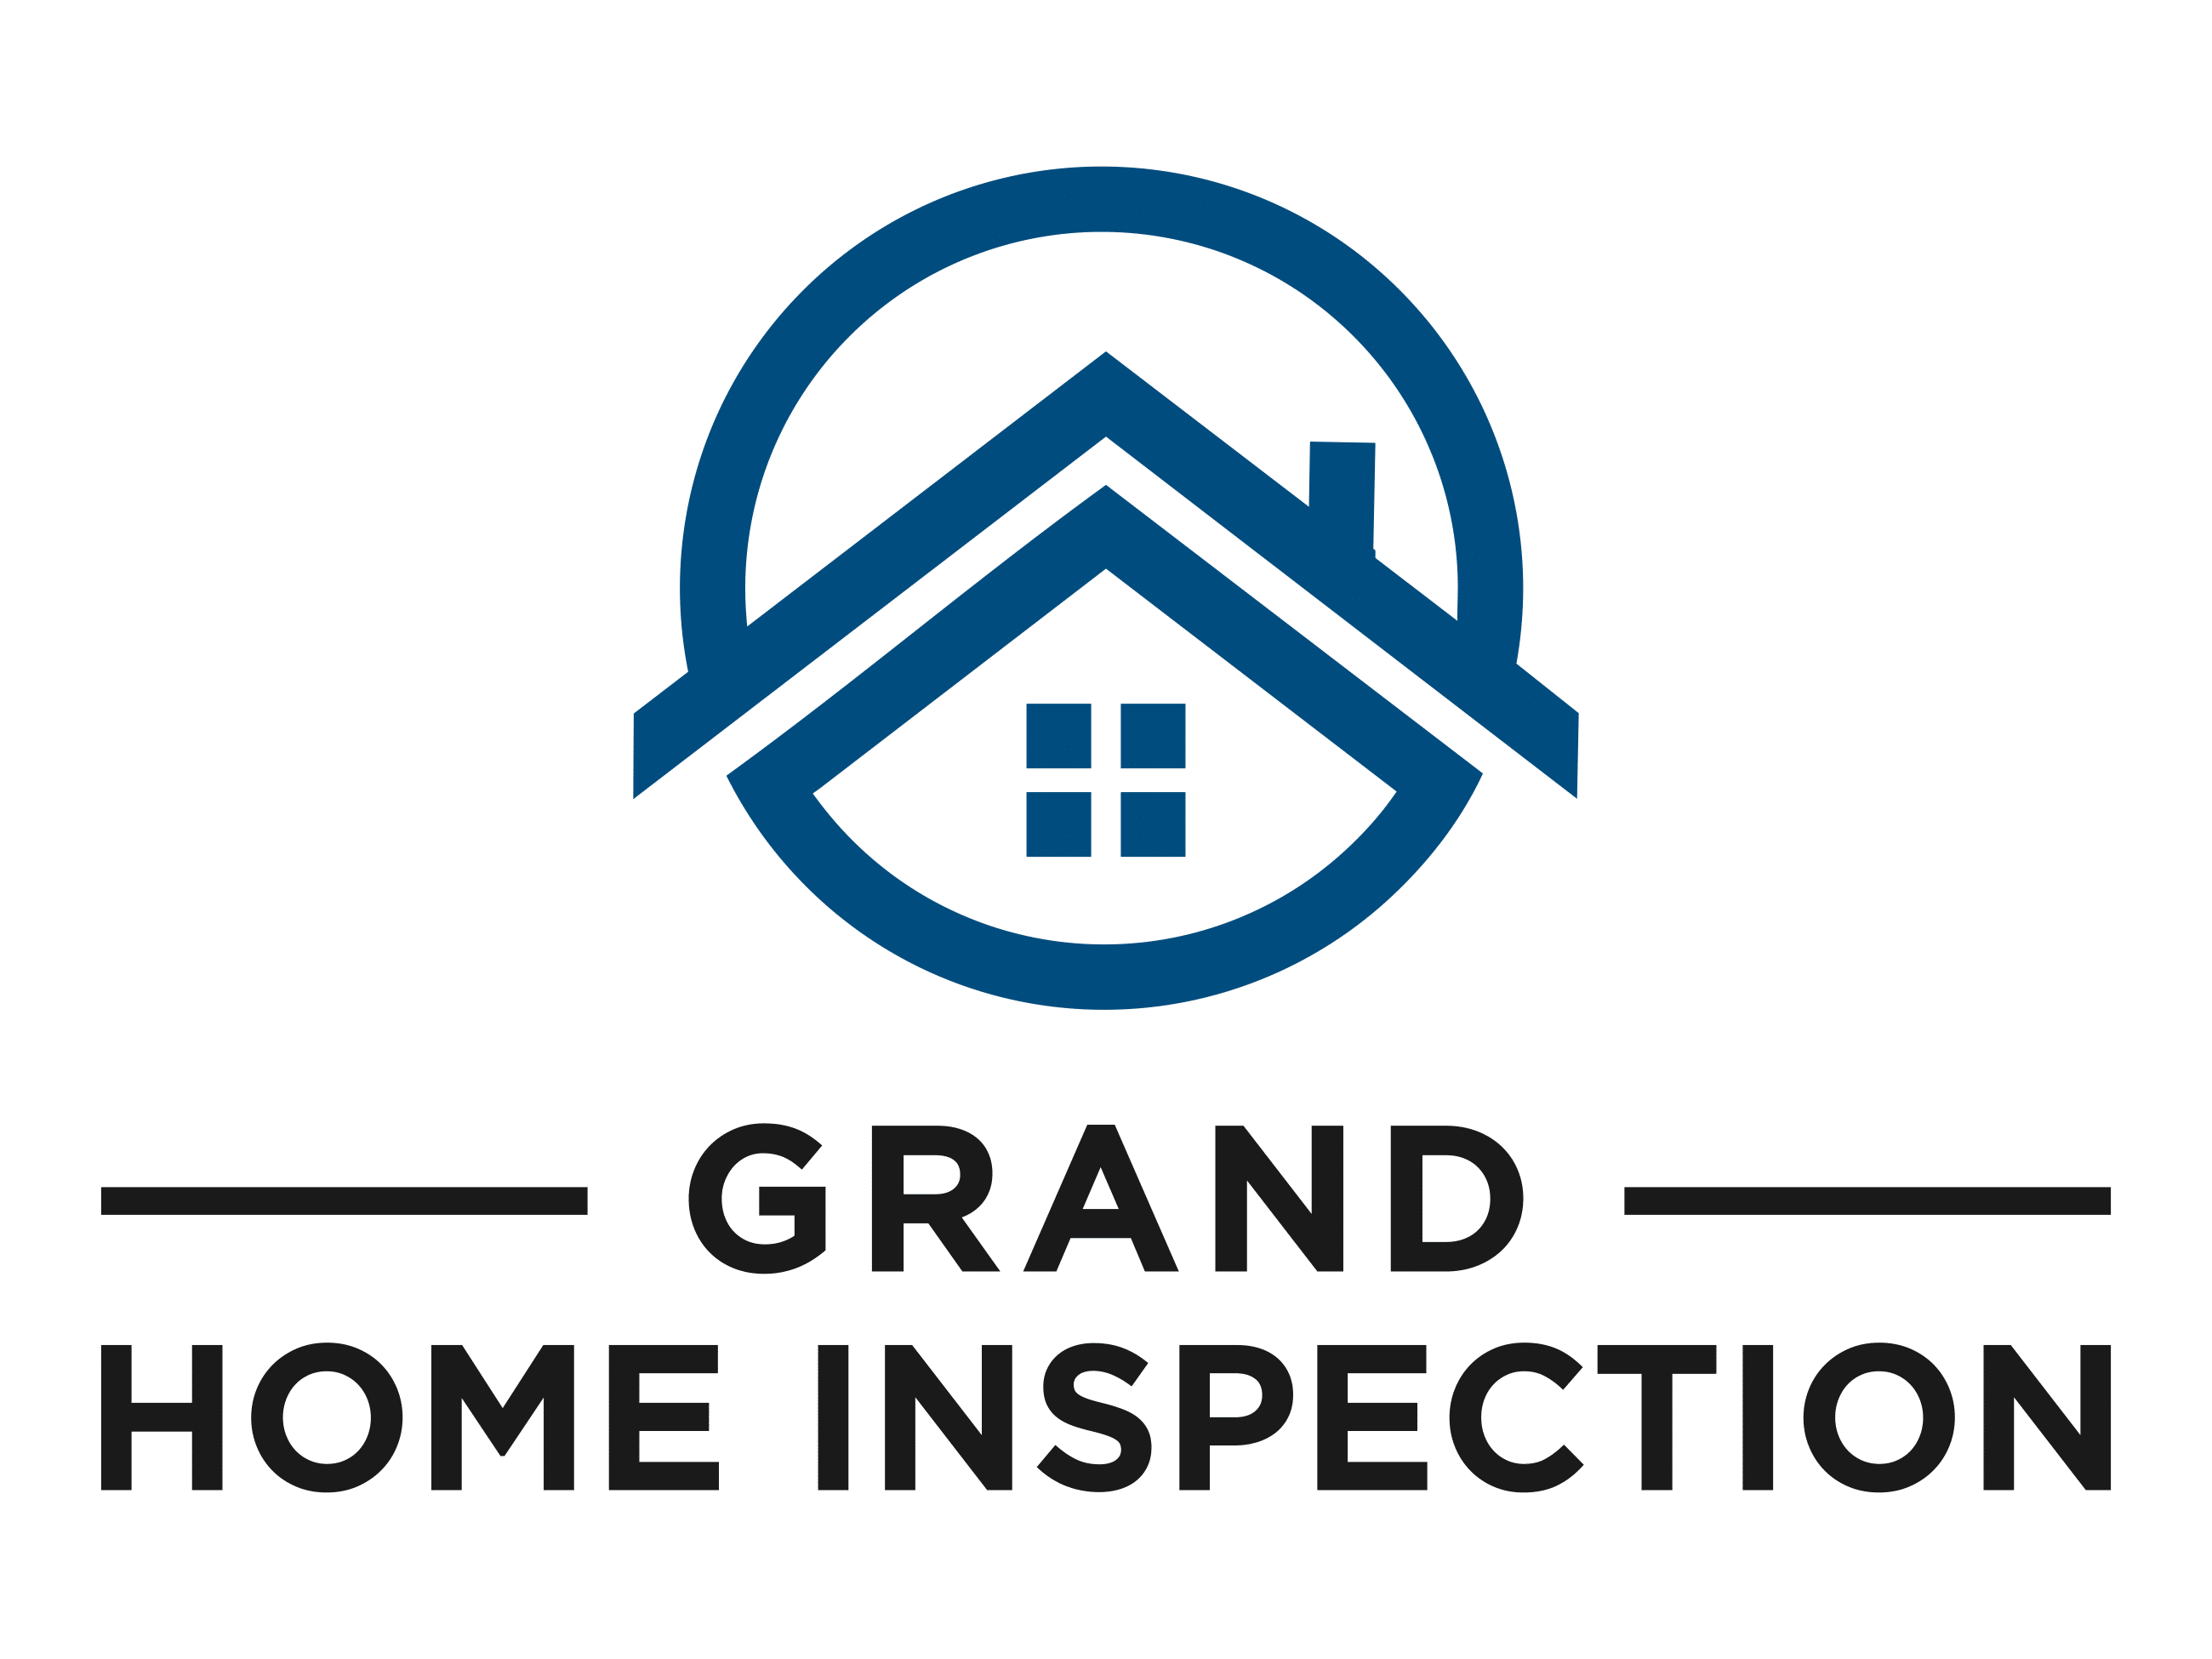 Grand Home Inspection LLC